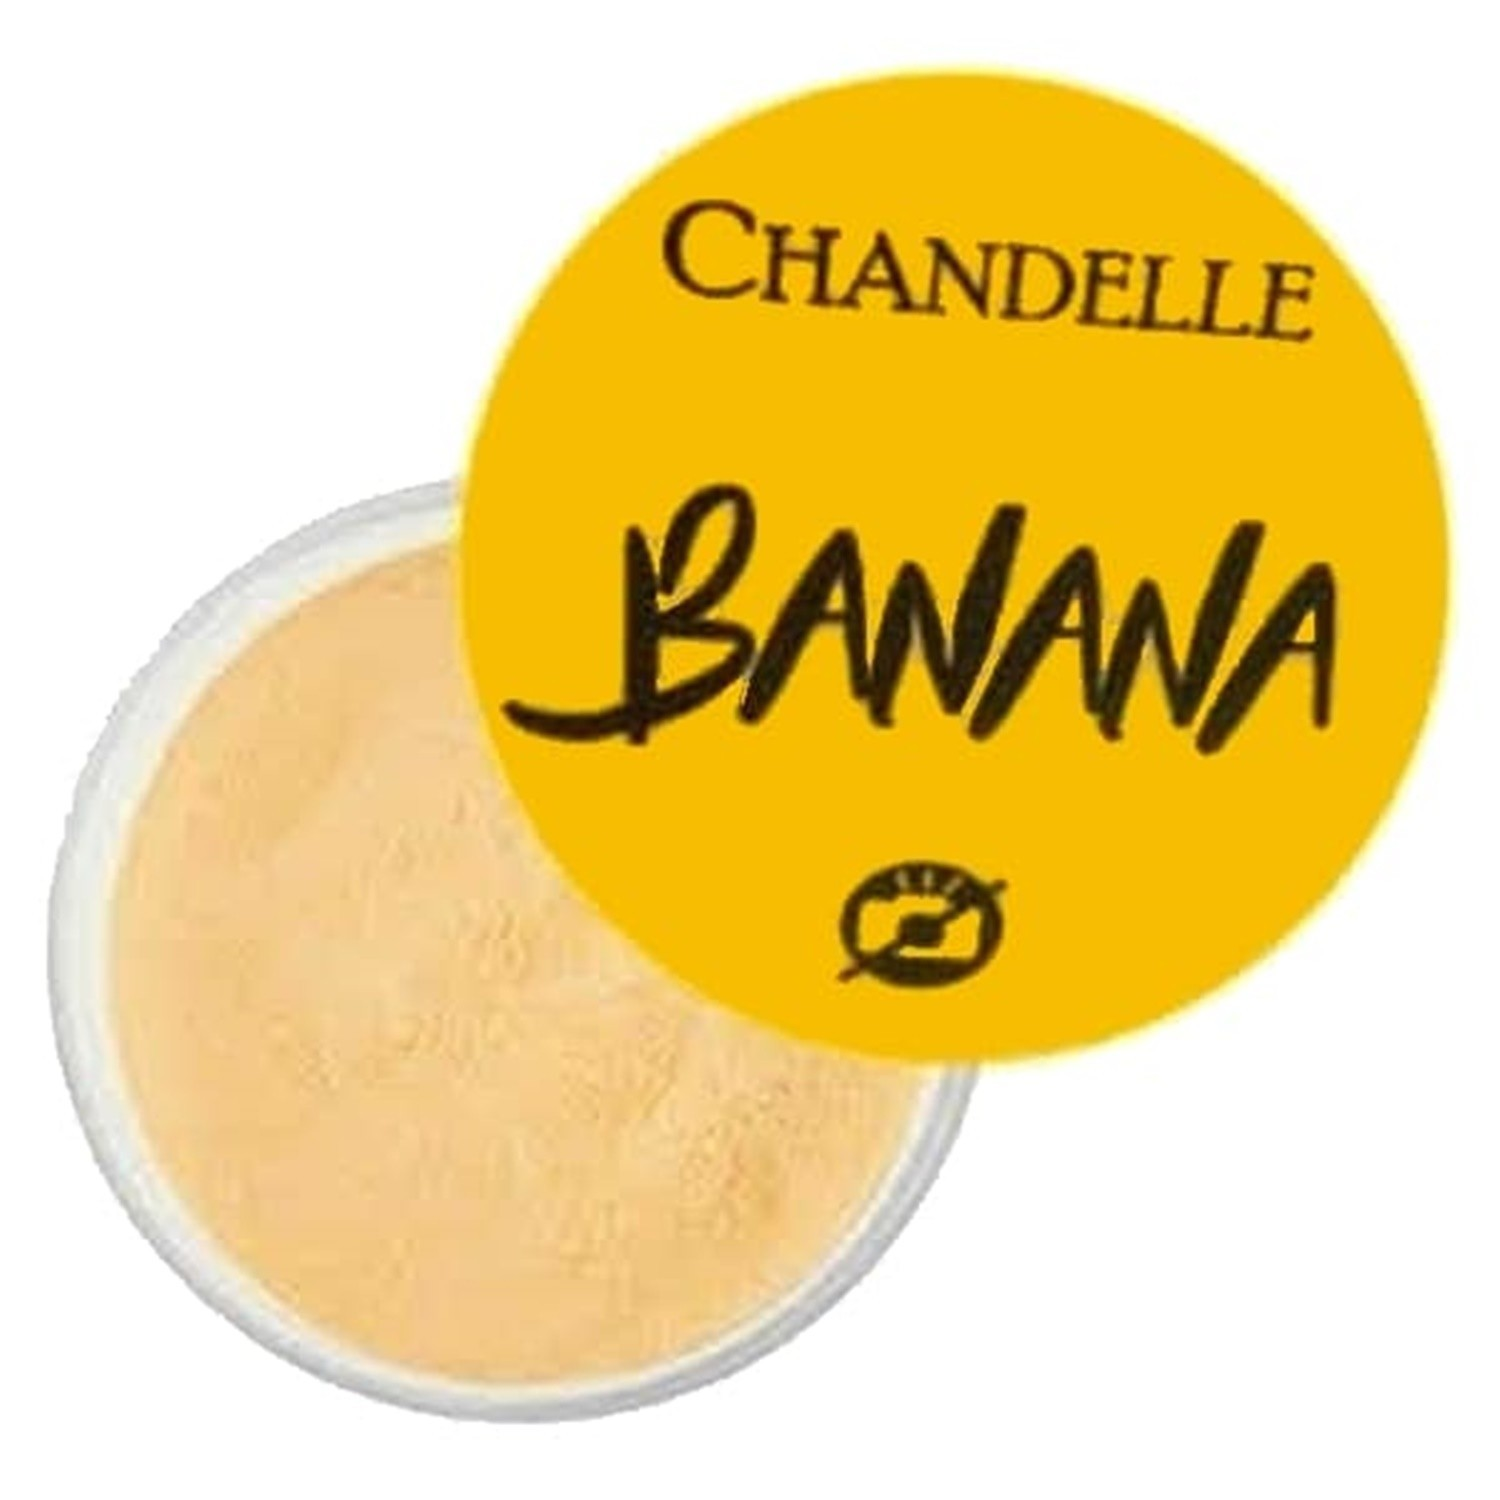 Pó Facial Banana - Chandelle